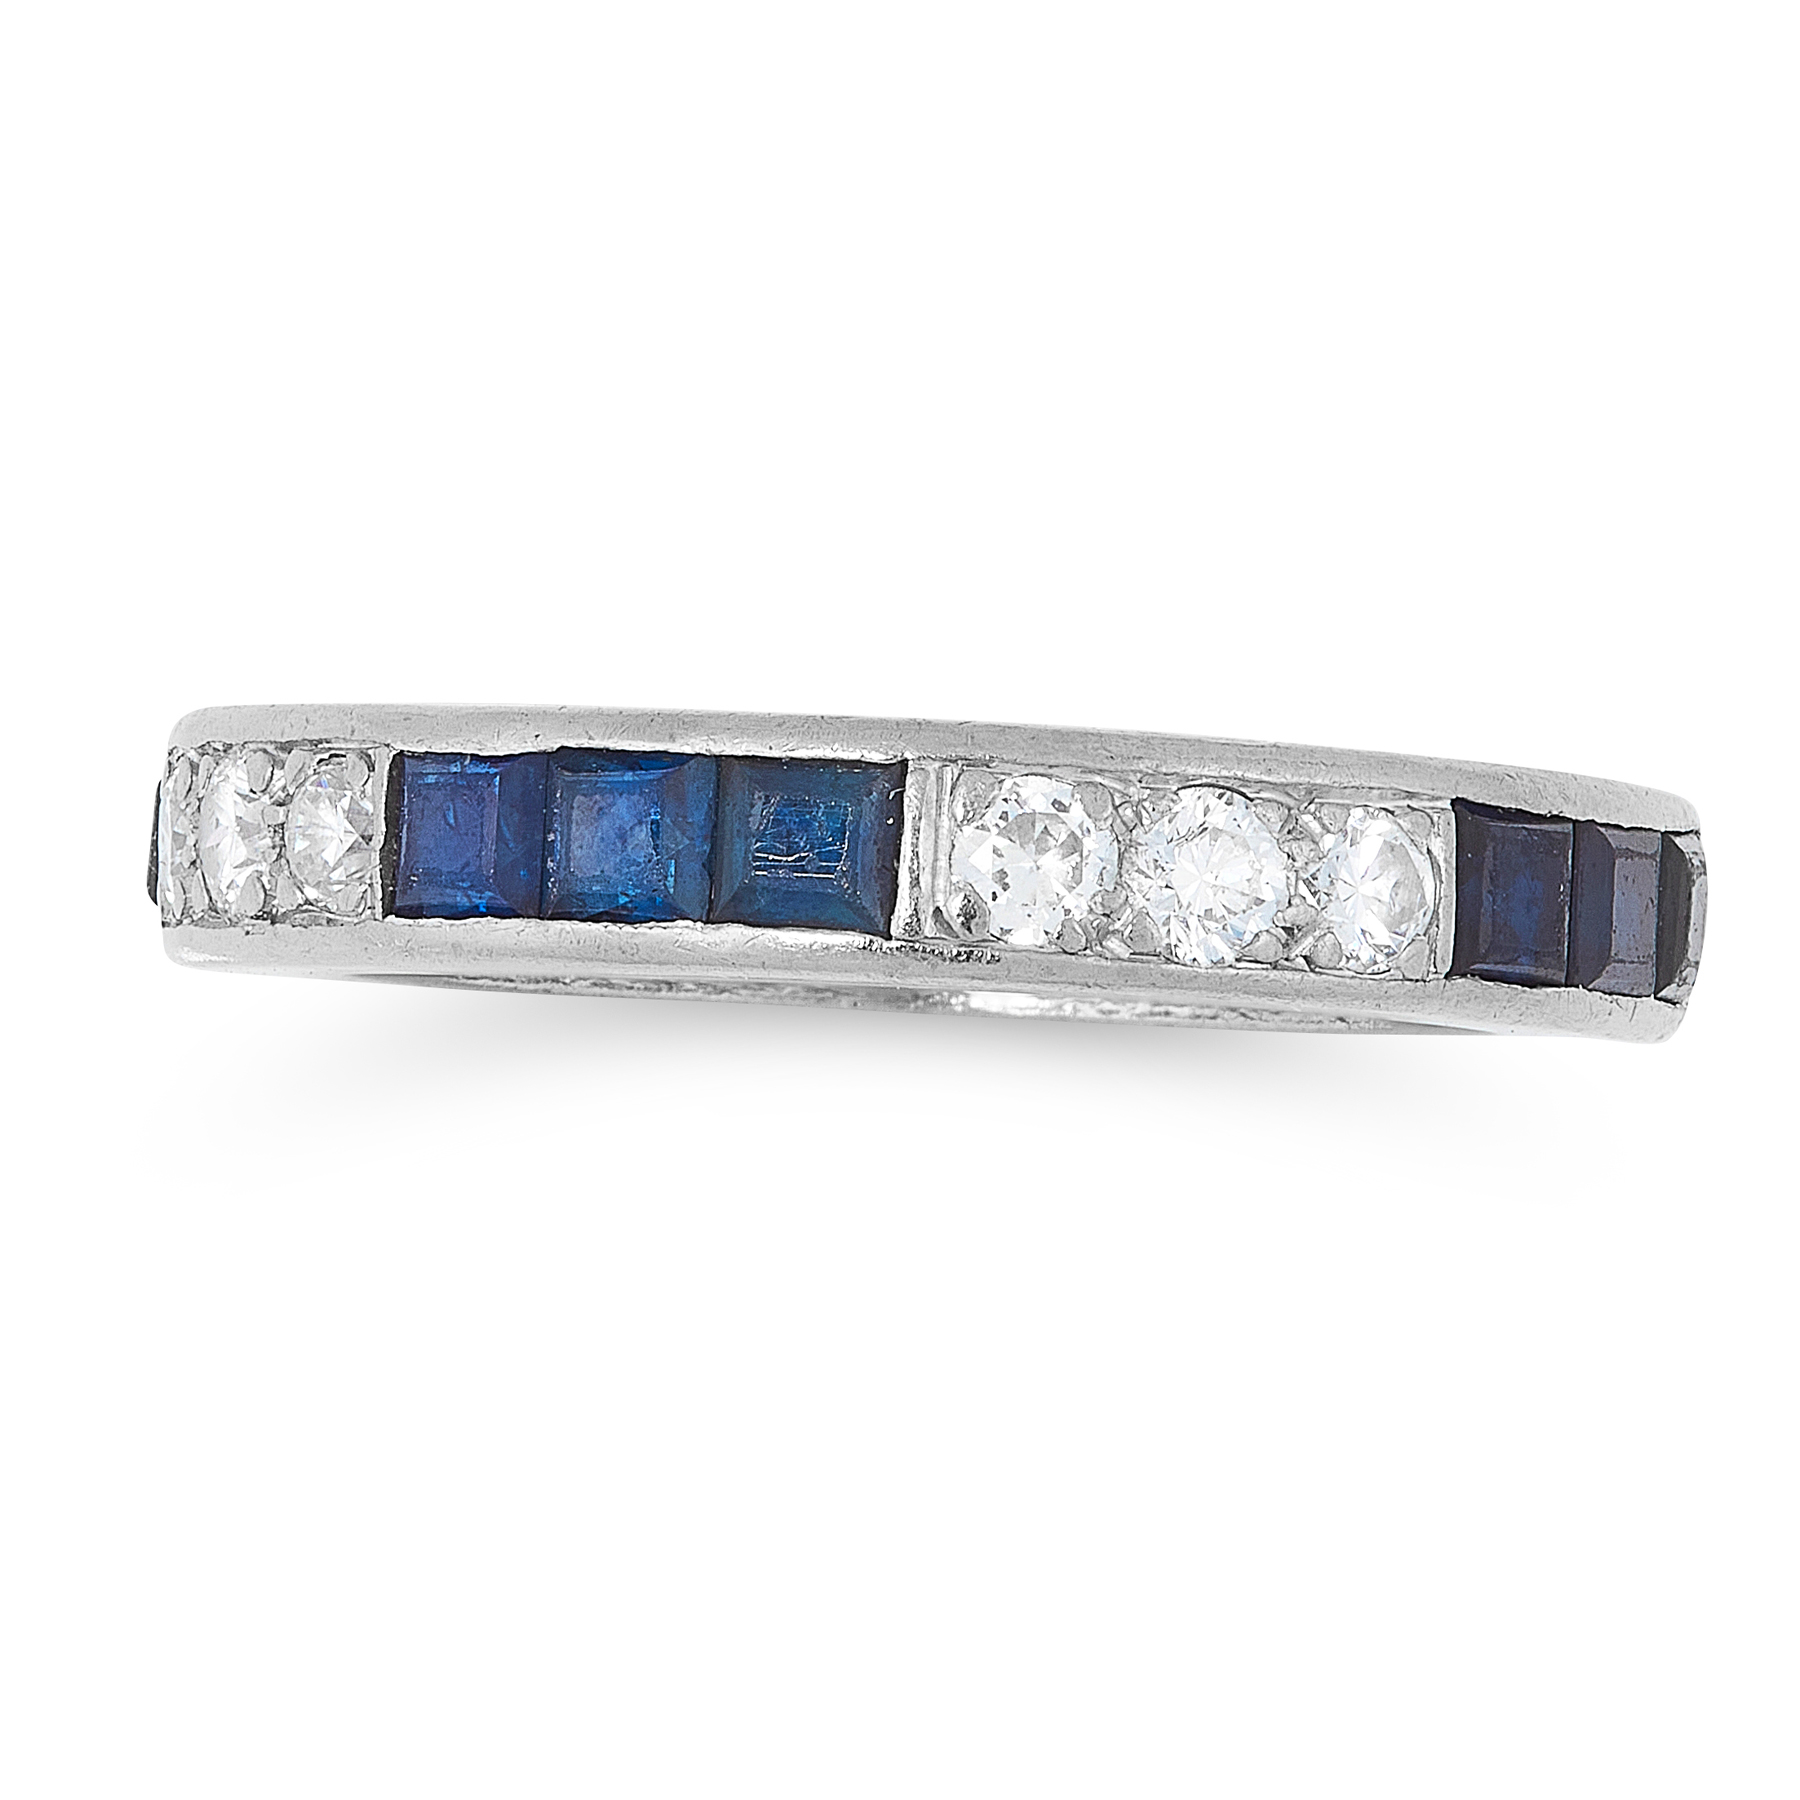 A SAPPHIRE AND DIAMOND ETERNITY RING CIRCA 1940 in platinum, designed as a band of alternating trios